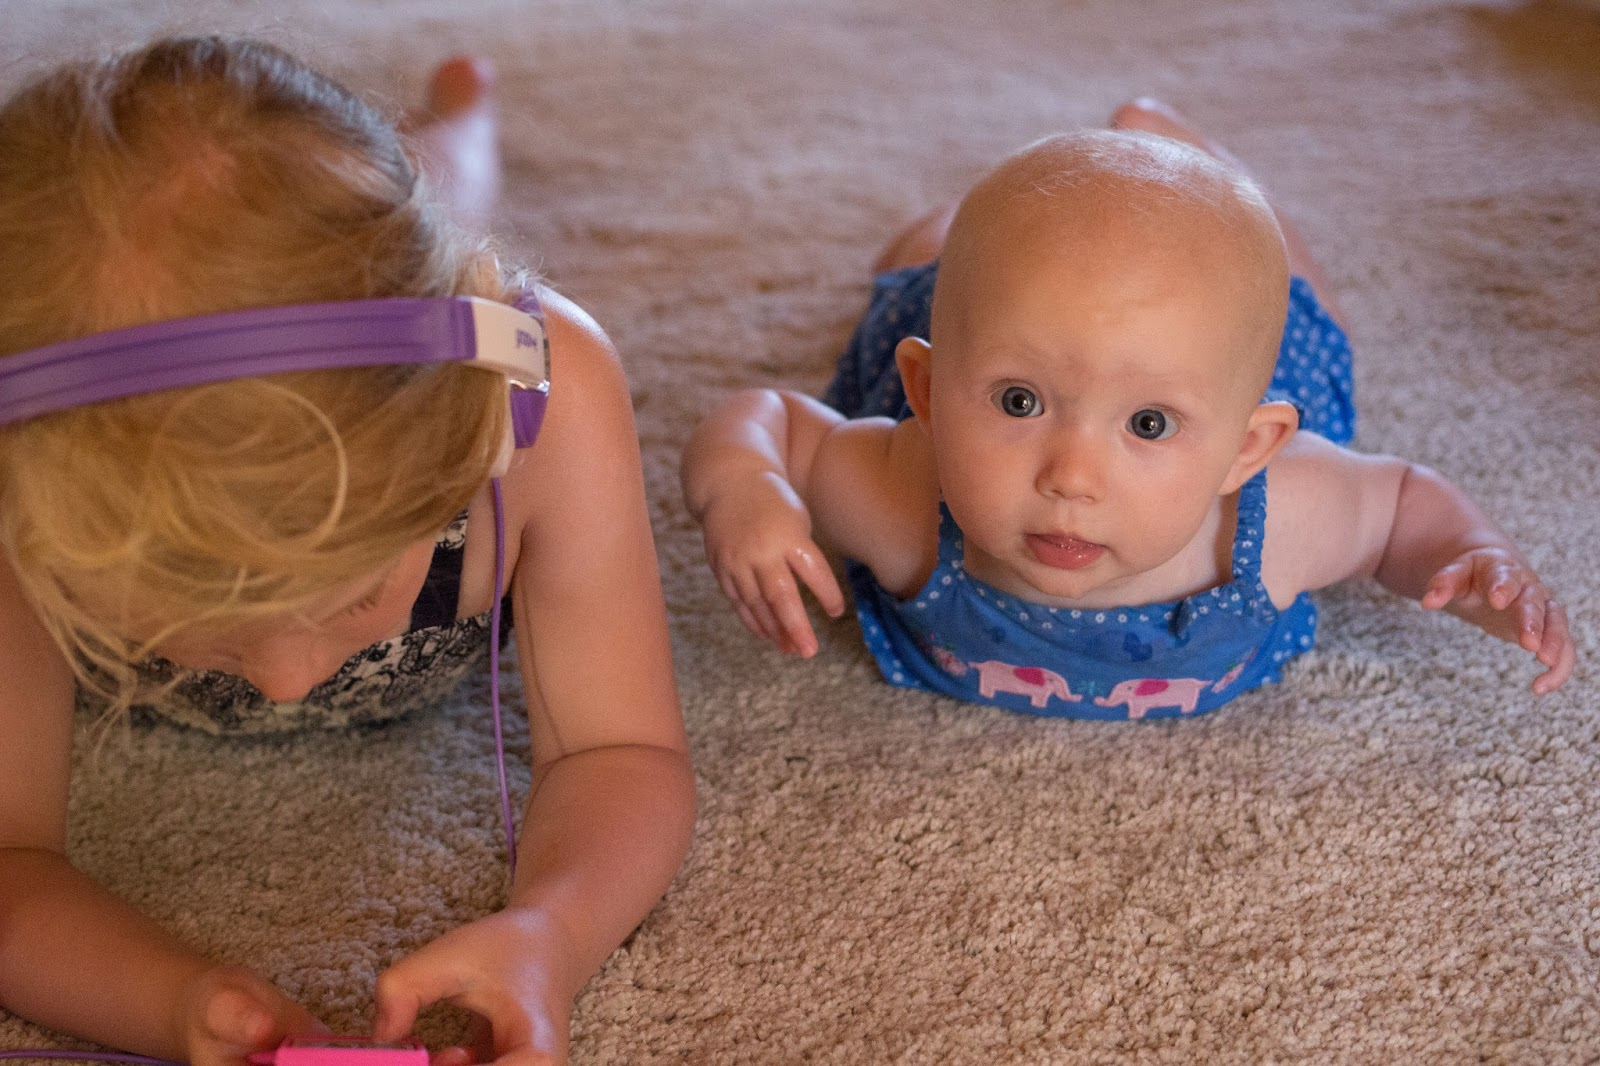 Baby lying on her tummy looking at the camera next to a little girl lying on her tummy listening to music on an ipod